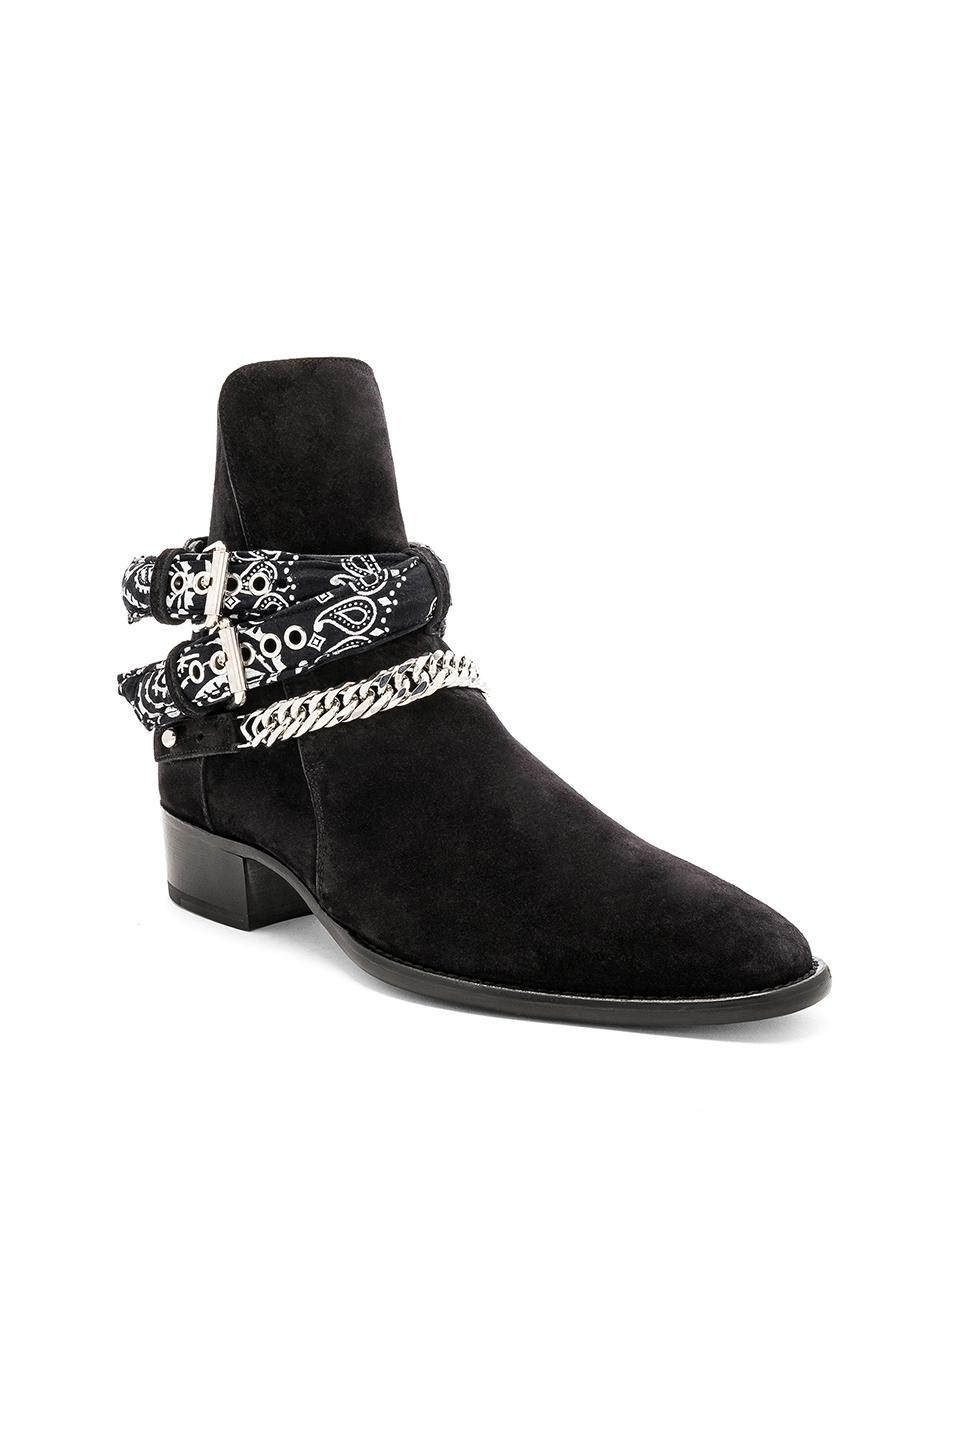 Amiri Suede Bandana Buckle Boot In Black For Men Save 42